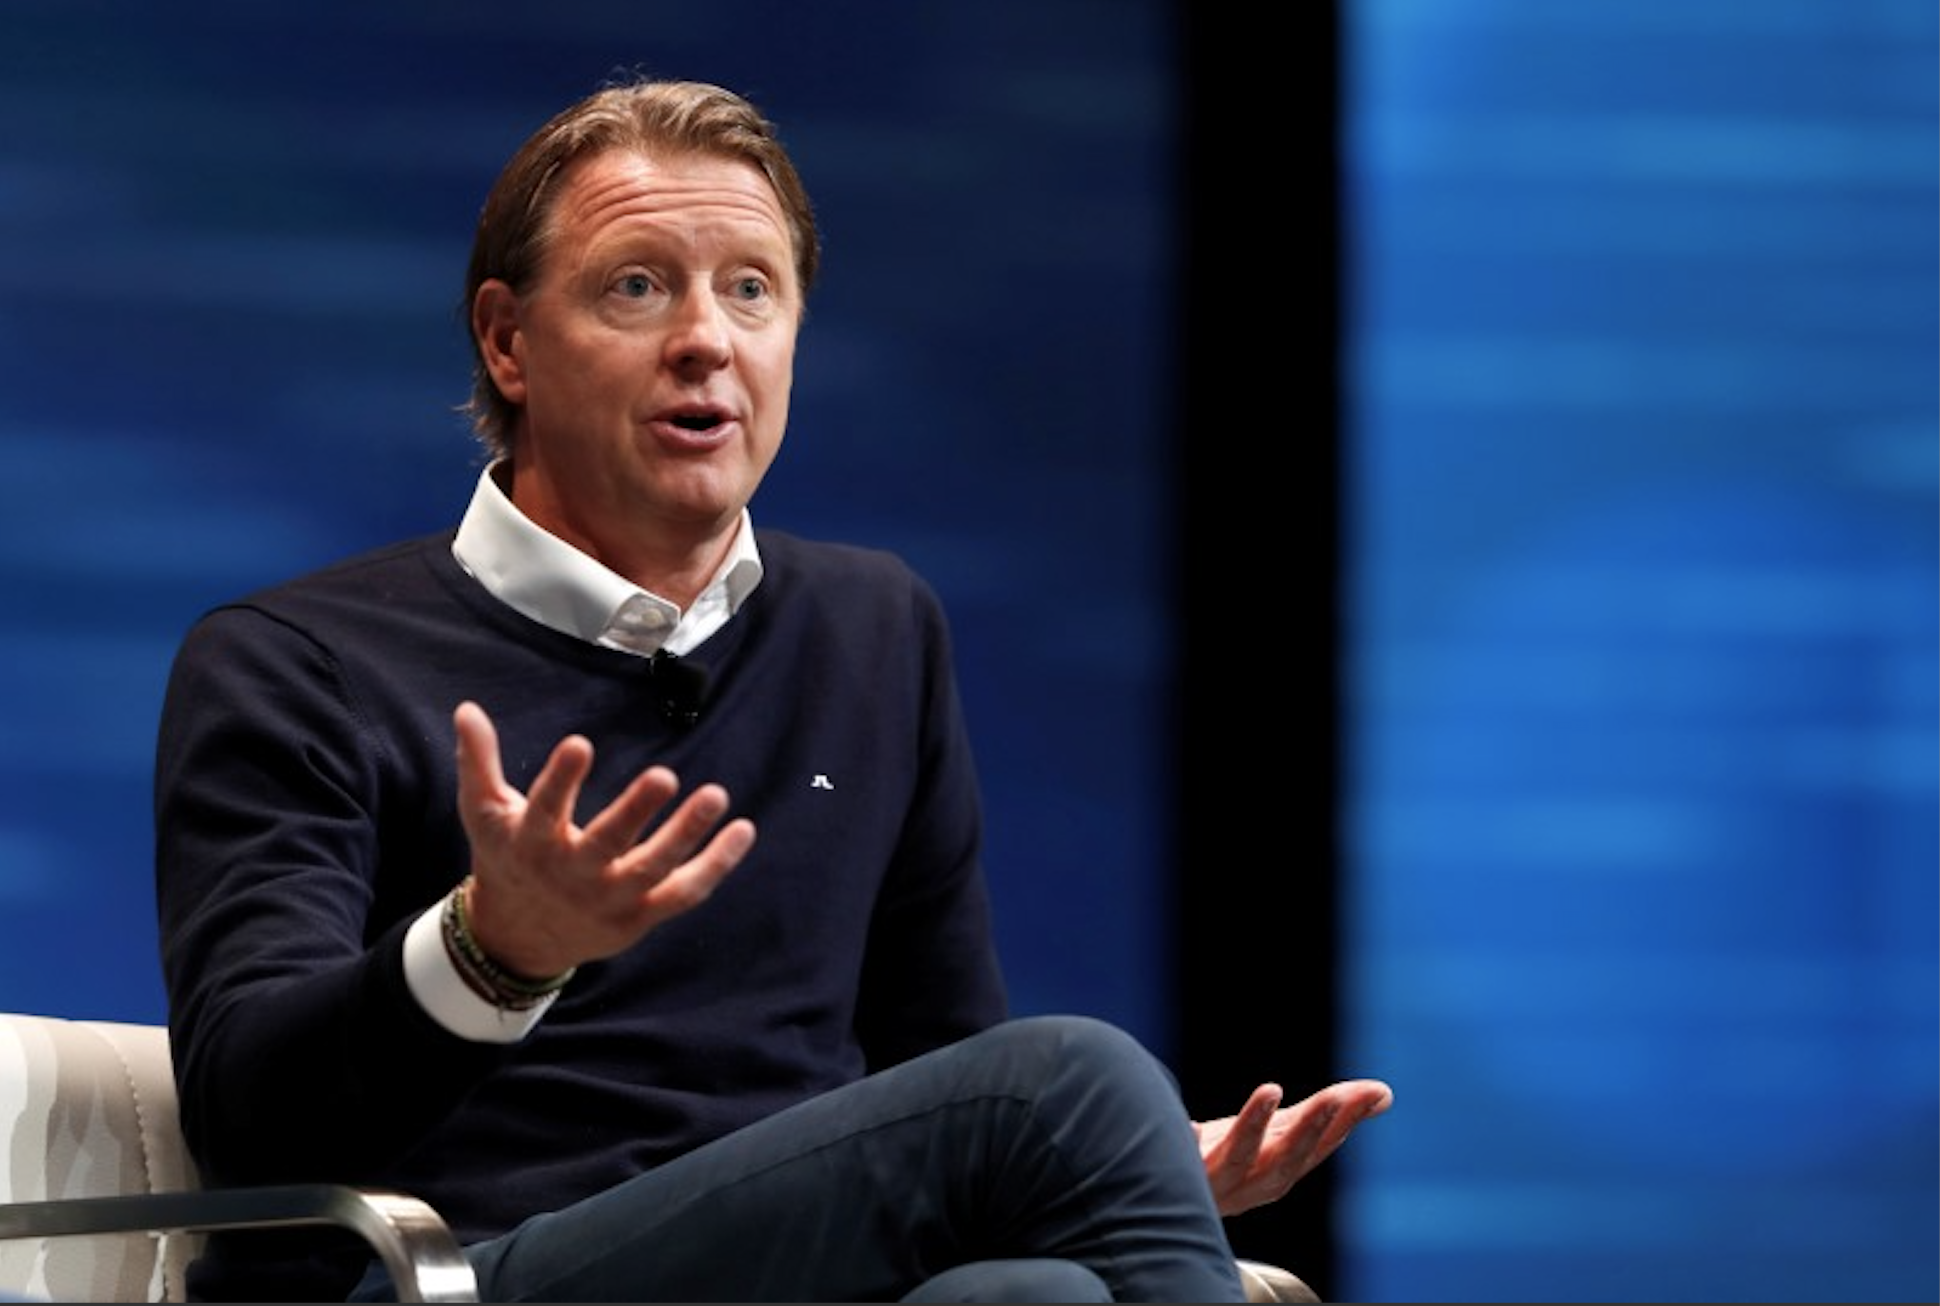 Hans Vestberg Verizon executive vice president and president of Global Networks and Chief Technology Officer speaks during a panel discussion on 5G wireless broadband technology during the 2018 CES in Las Vegas Nevada